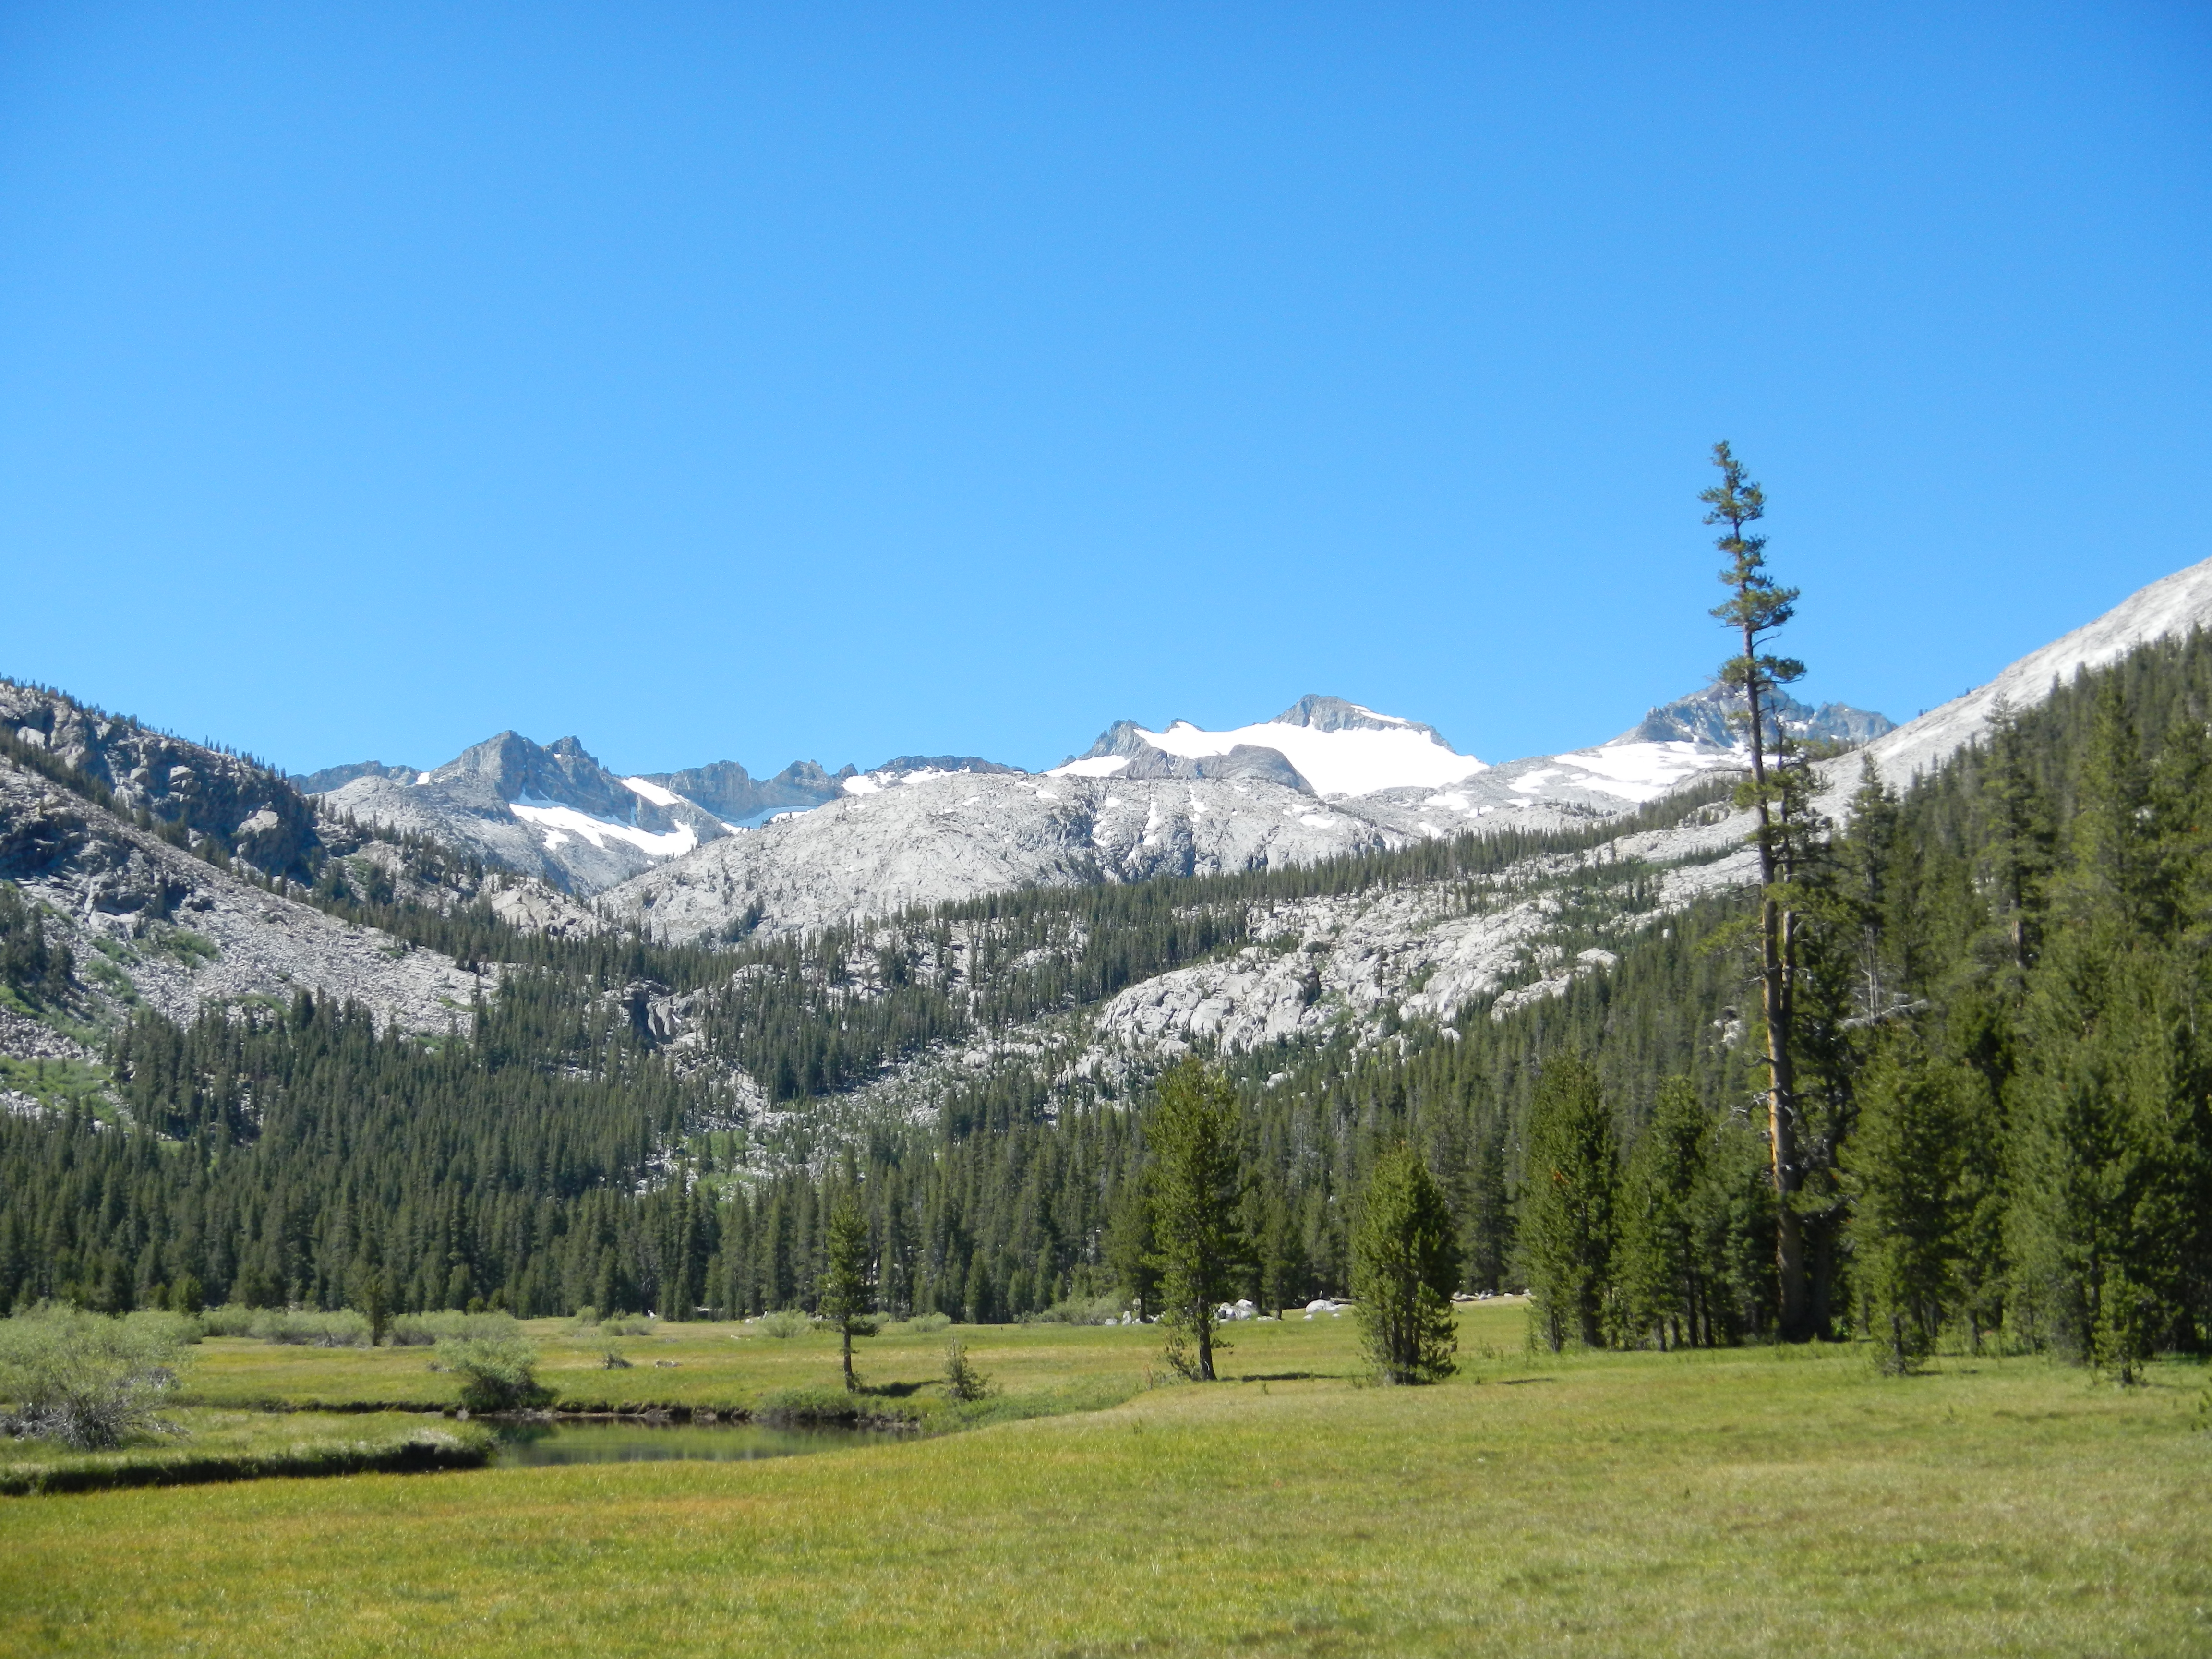 Approaching Donahue Pass